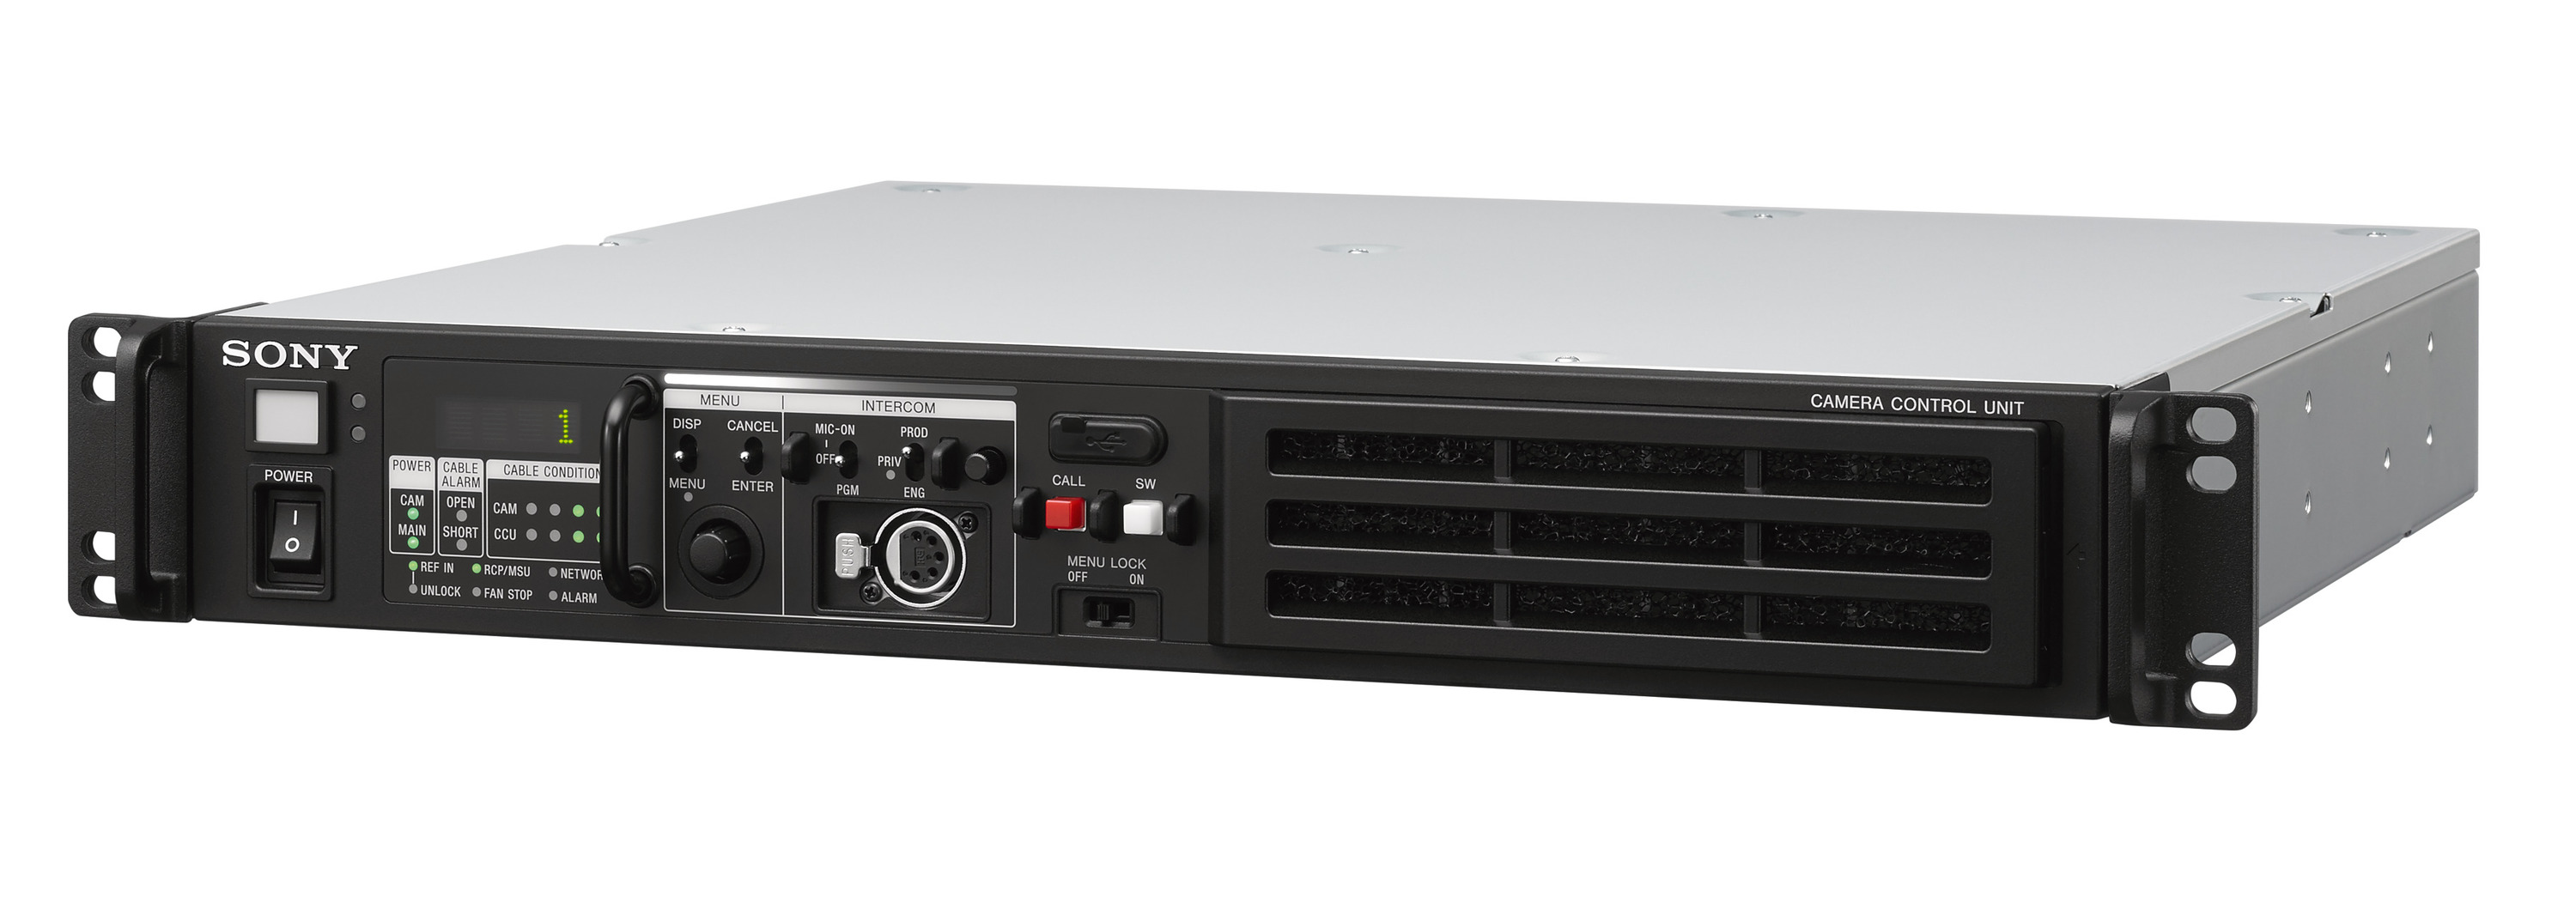 Sony adds to its IP Live Production ecosystem with the new HDCU-3100 camera control unit, providing SMPTE ST 2110 and full IP-based interface